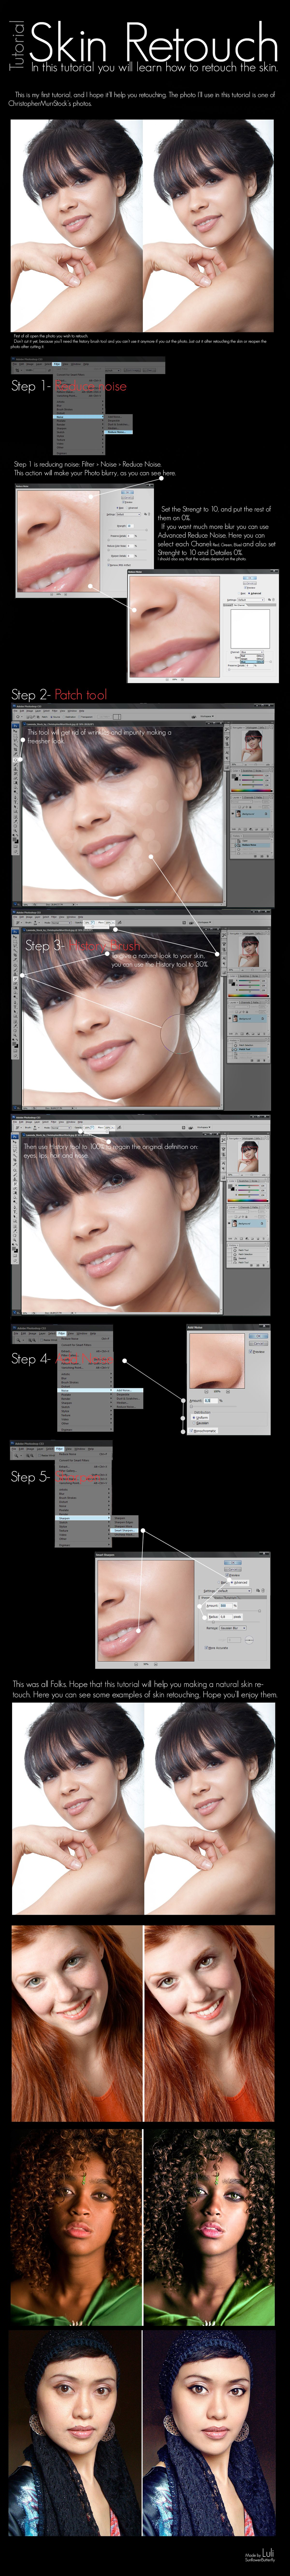 Skin retouch tutorial by lore03 on deviantart photoshop photography photoshop editing tutorial tips skin retouching baditri Image collections